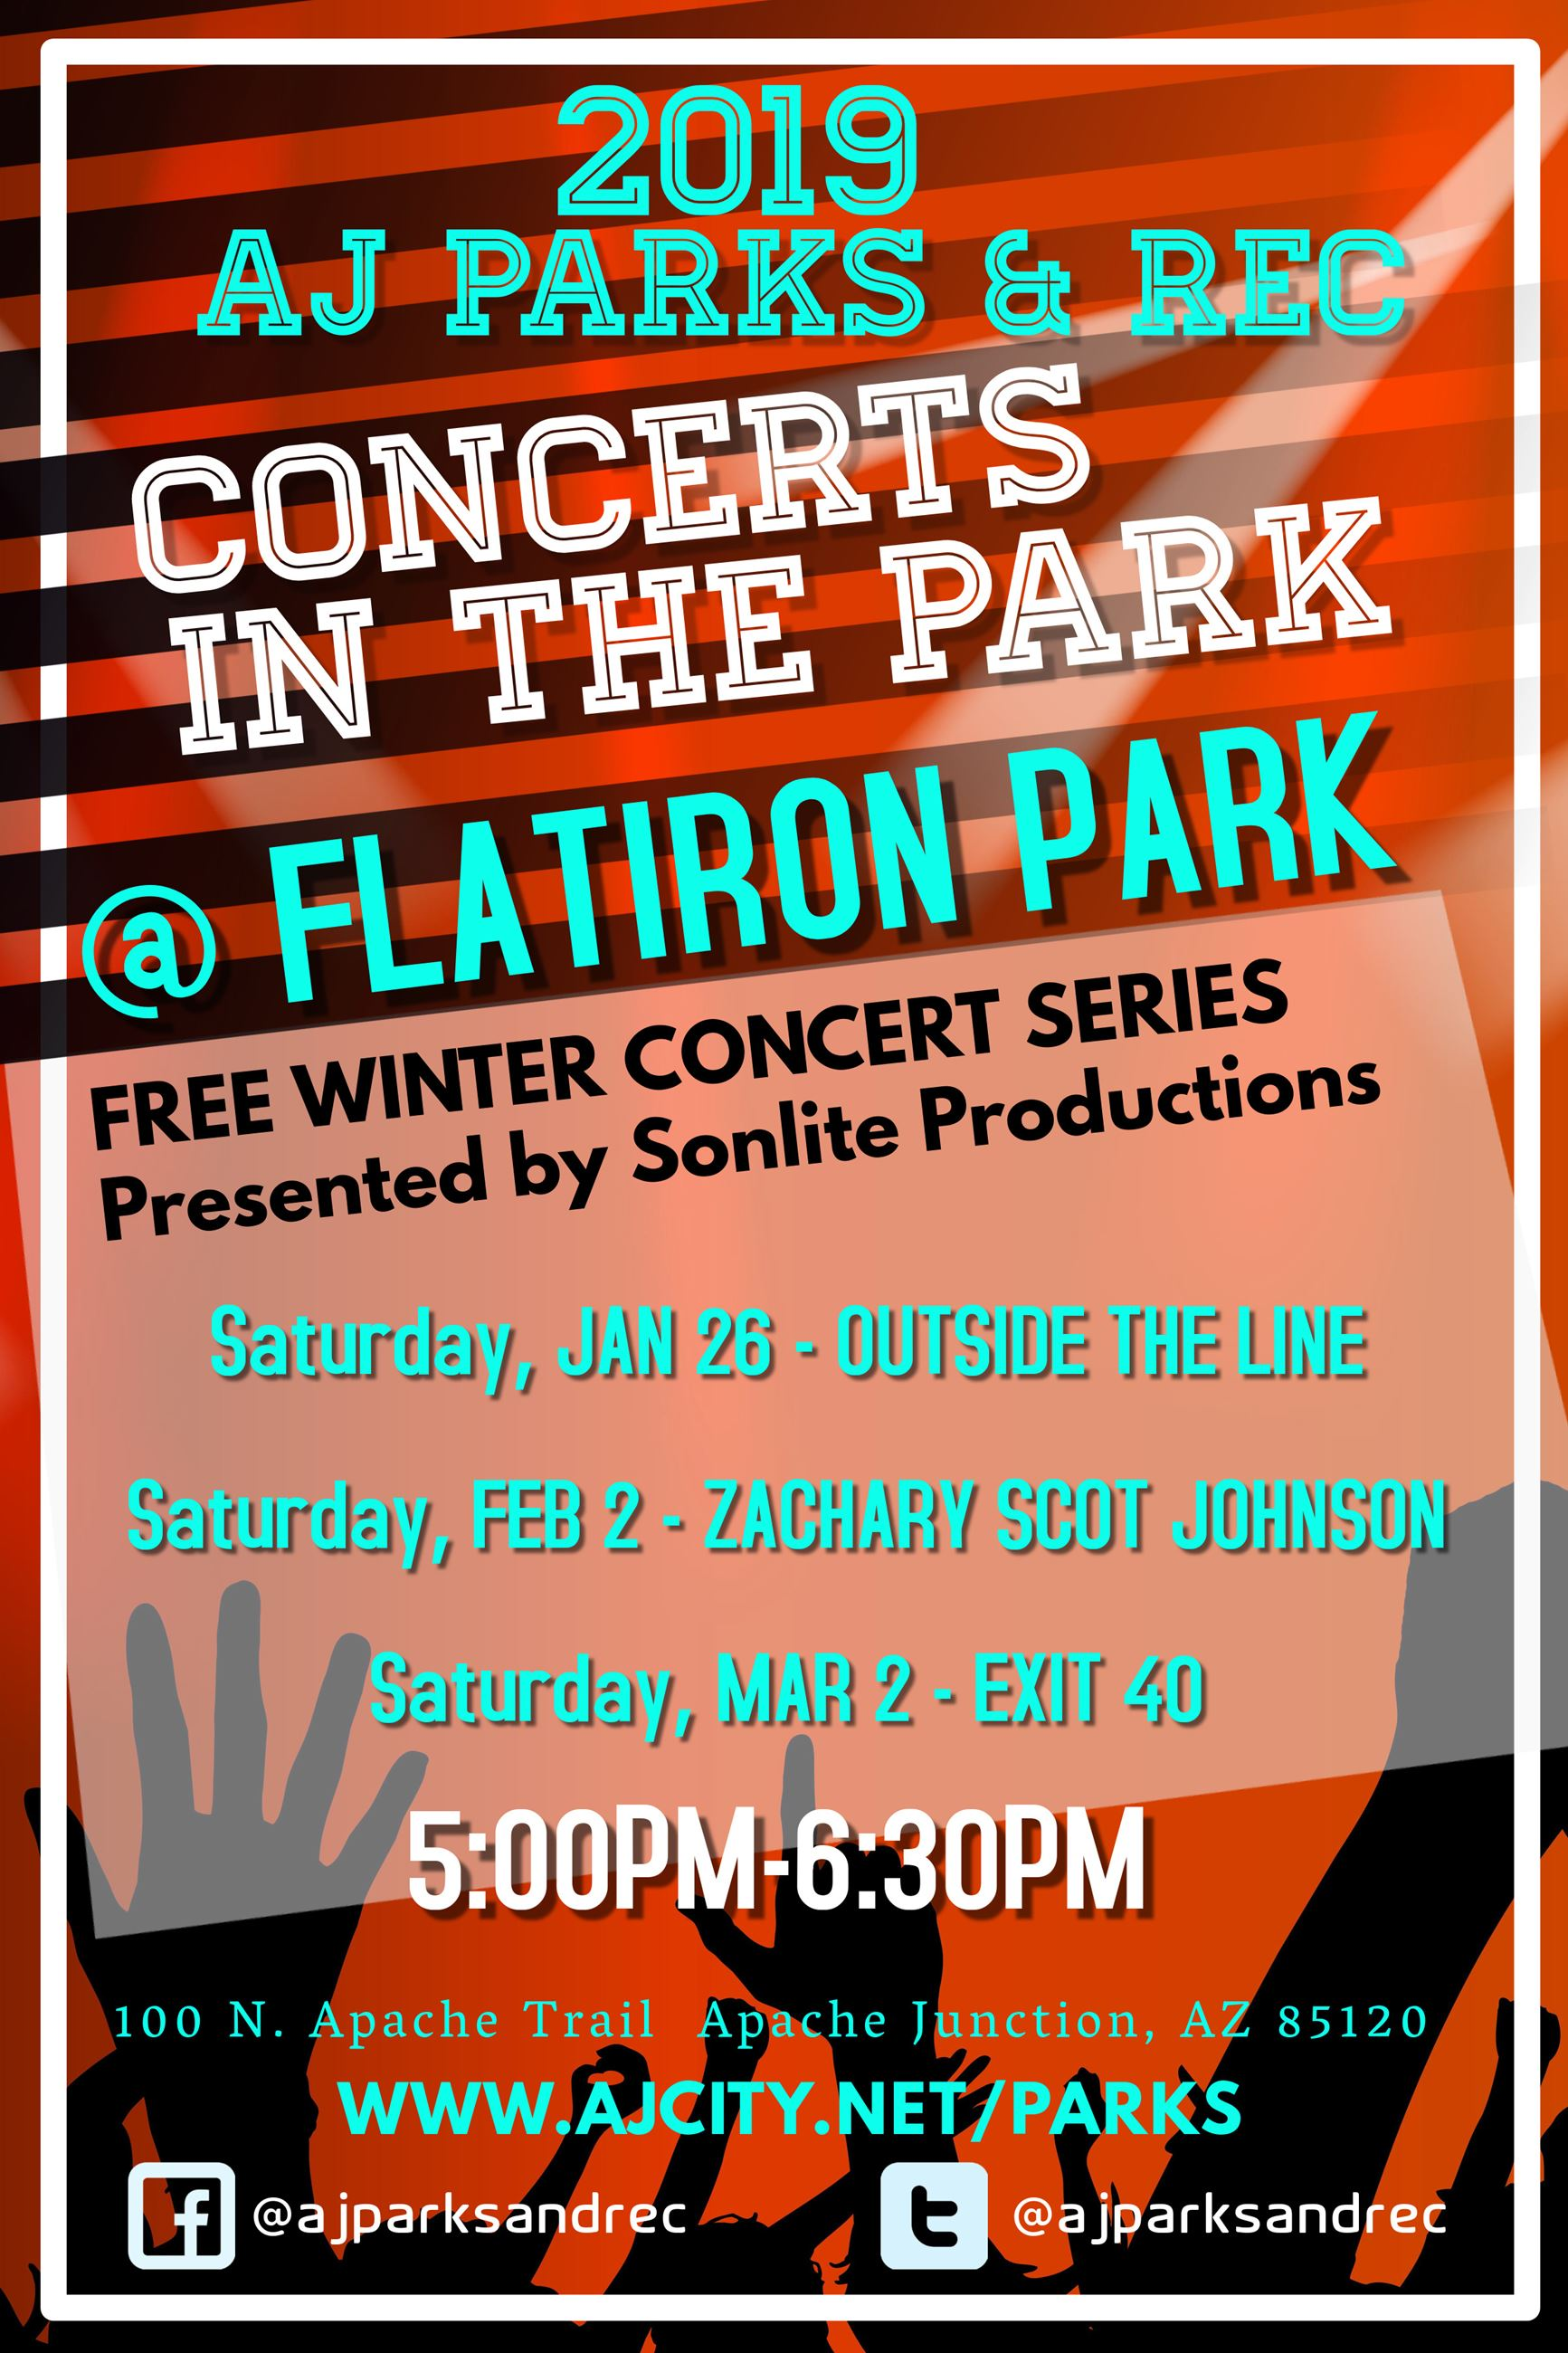 2019 Winter Concerts in the Park